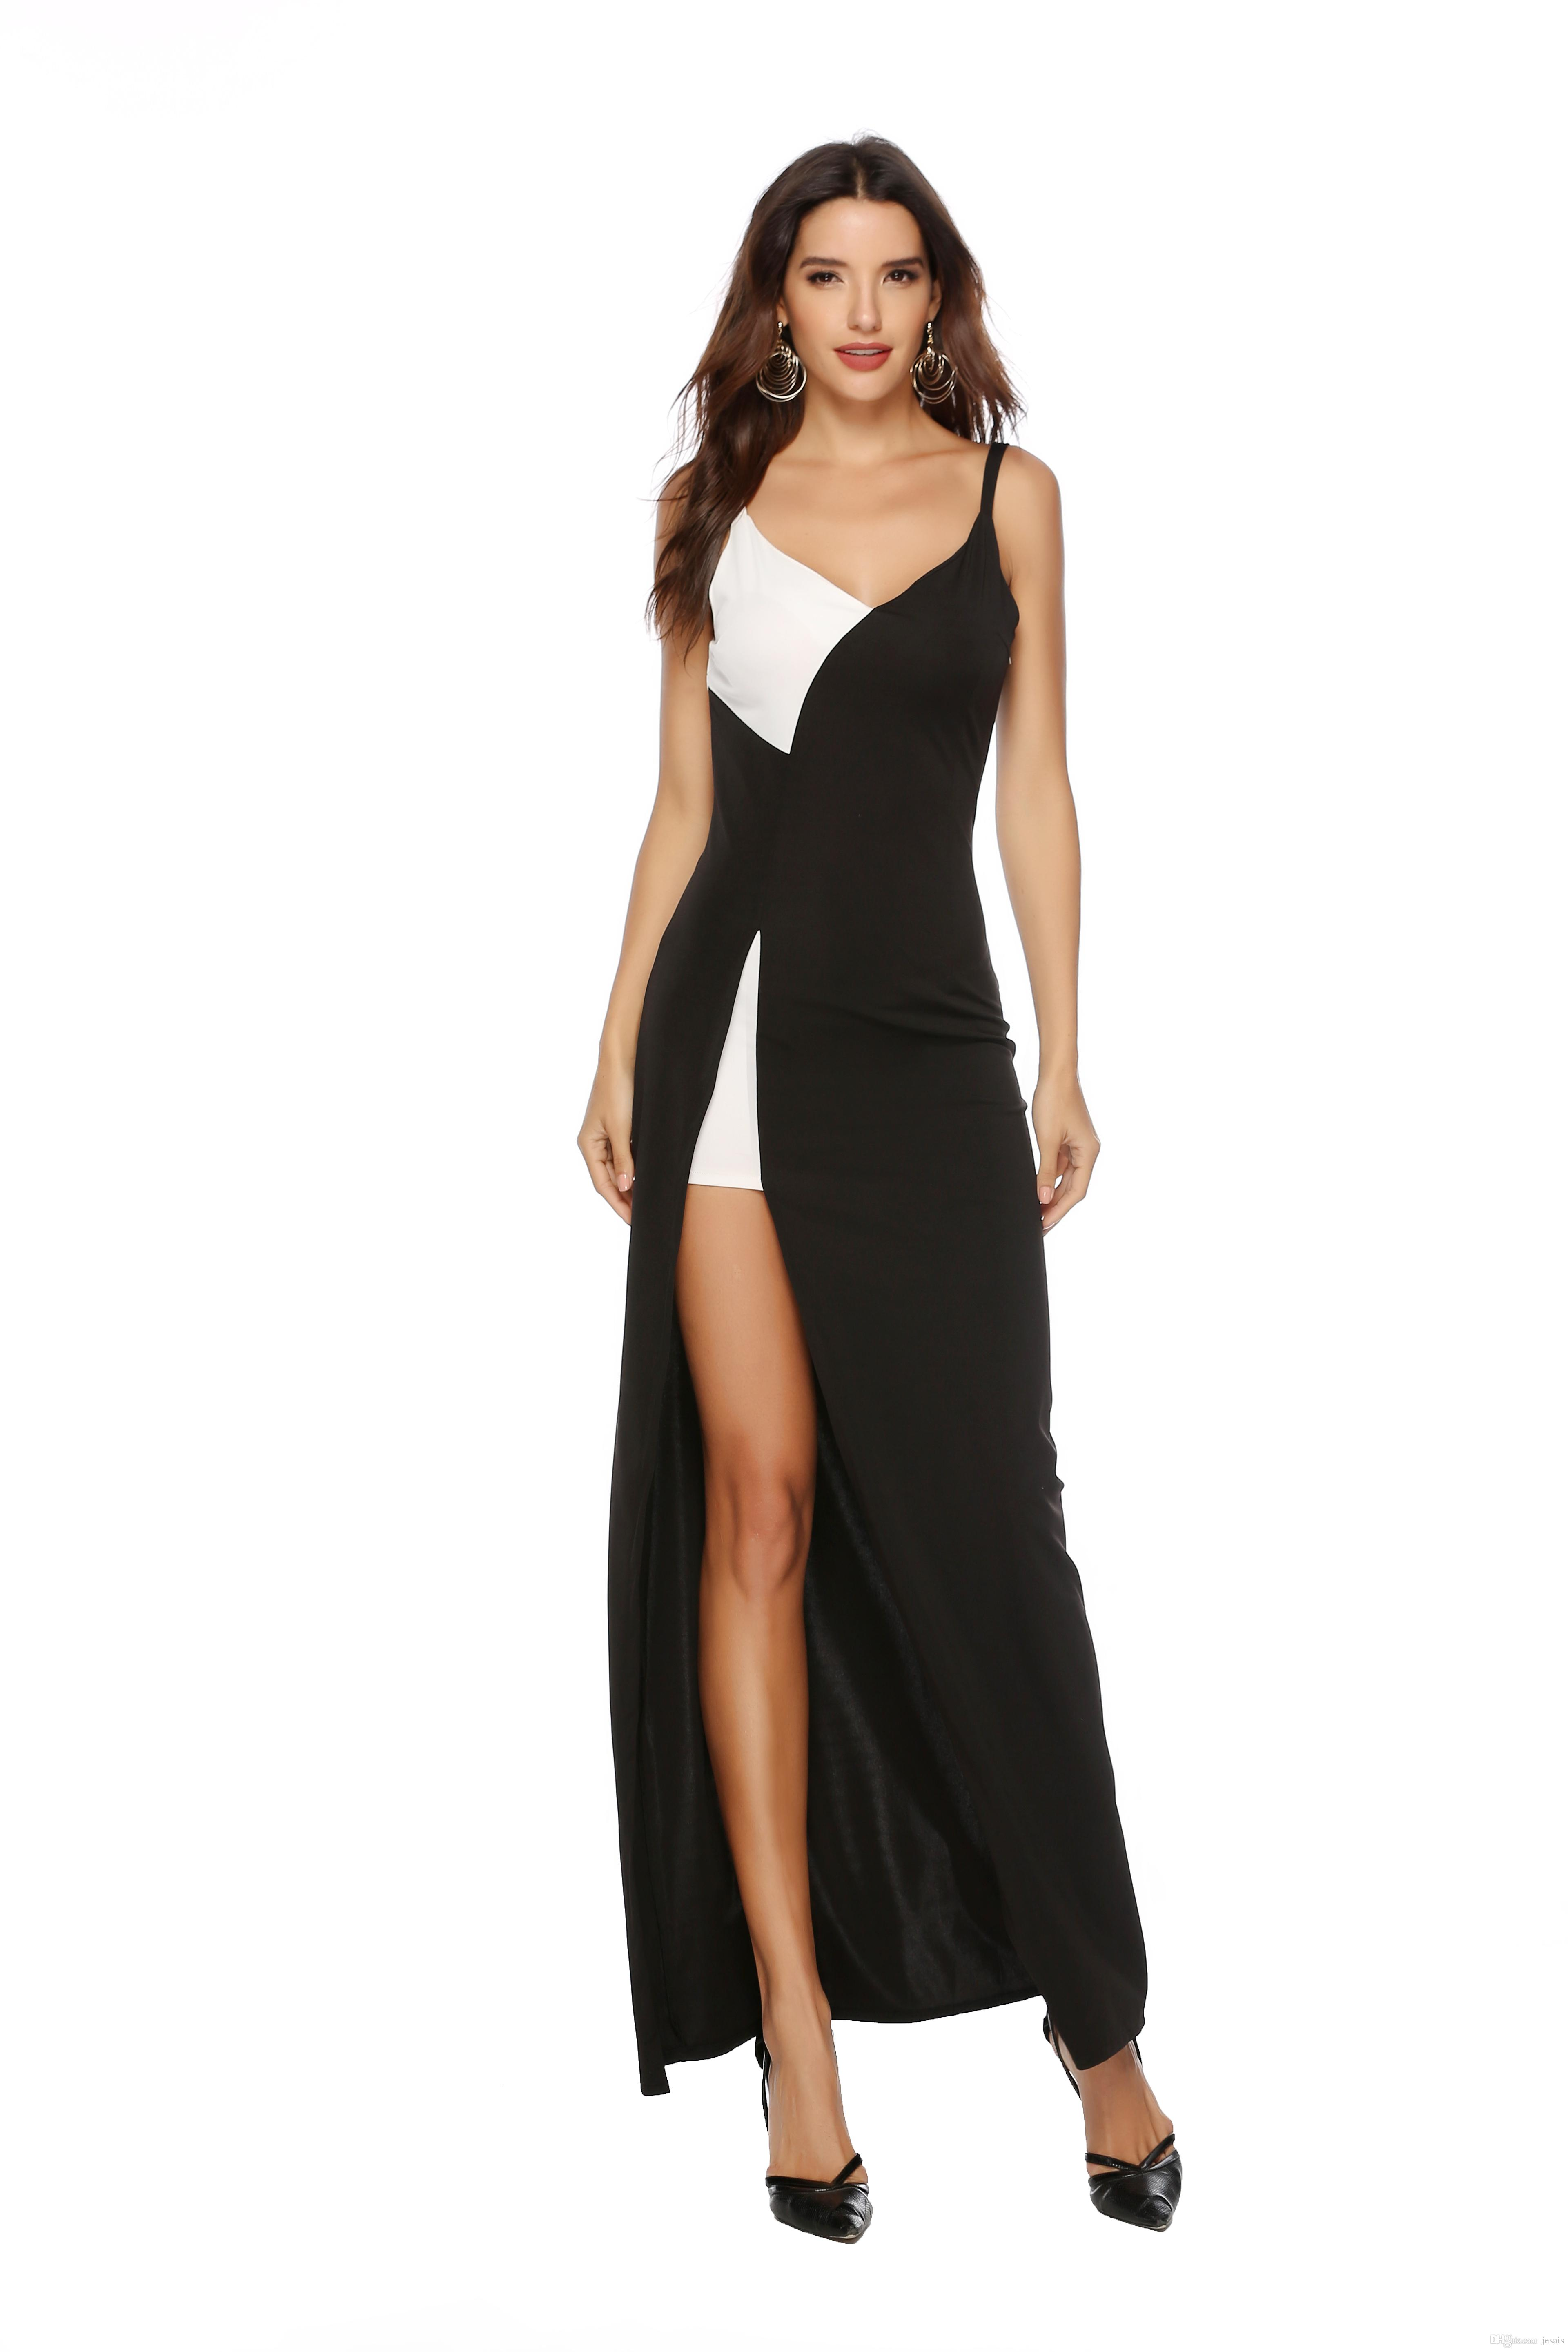 fed3d891fac42 2019 new elegant fashion sling Slim sexy V-neck black and white stitching  with split dress a variety of sizes available